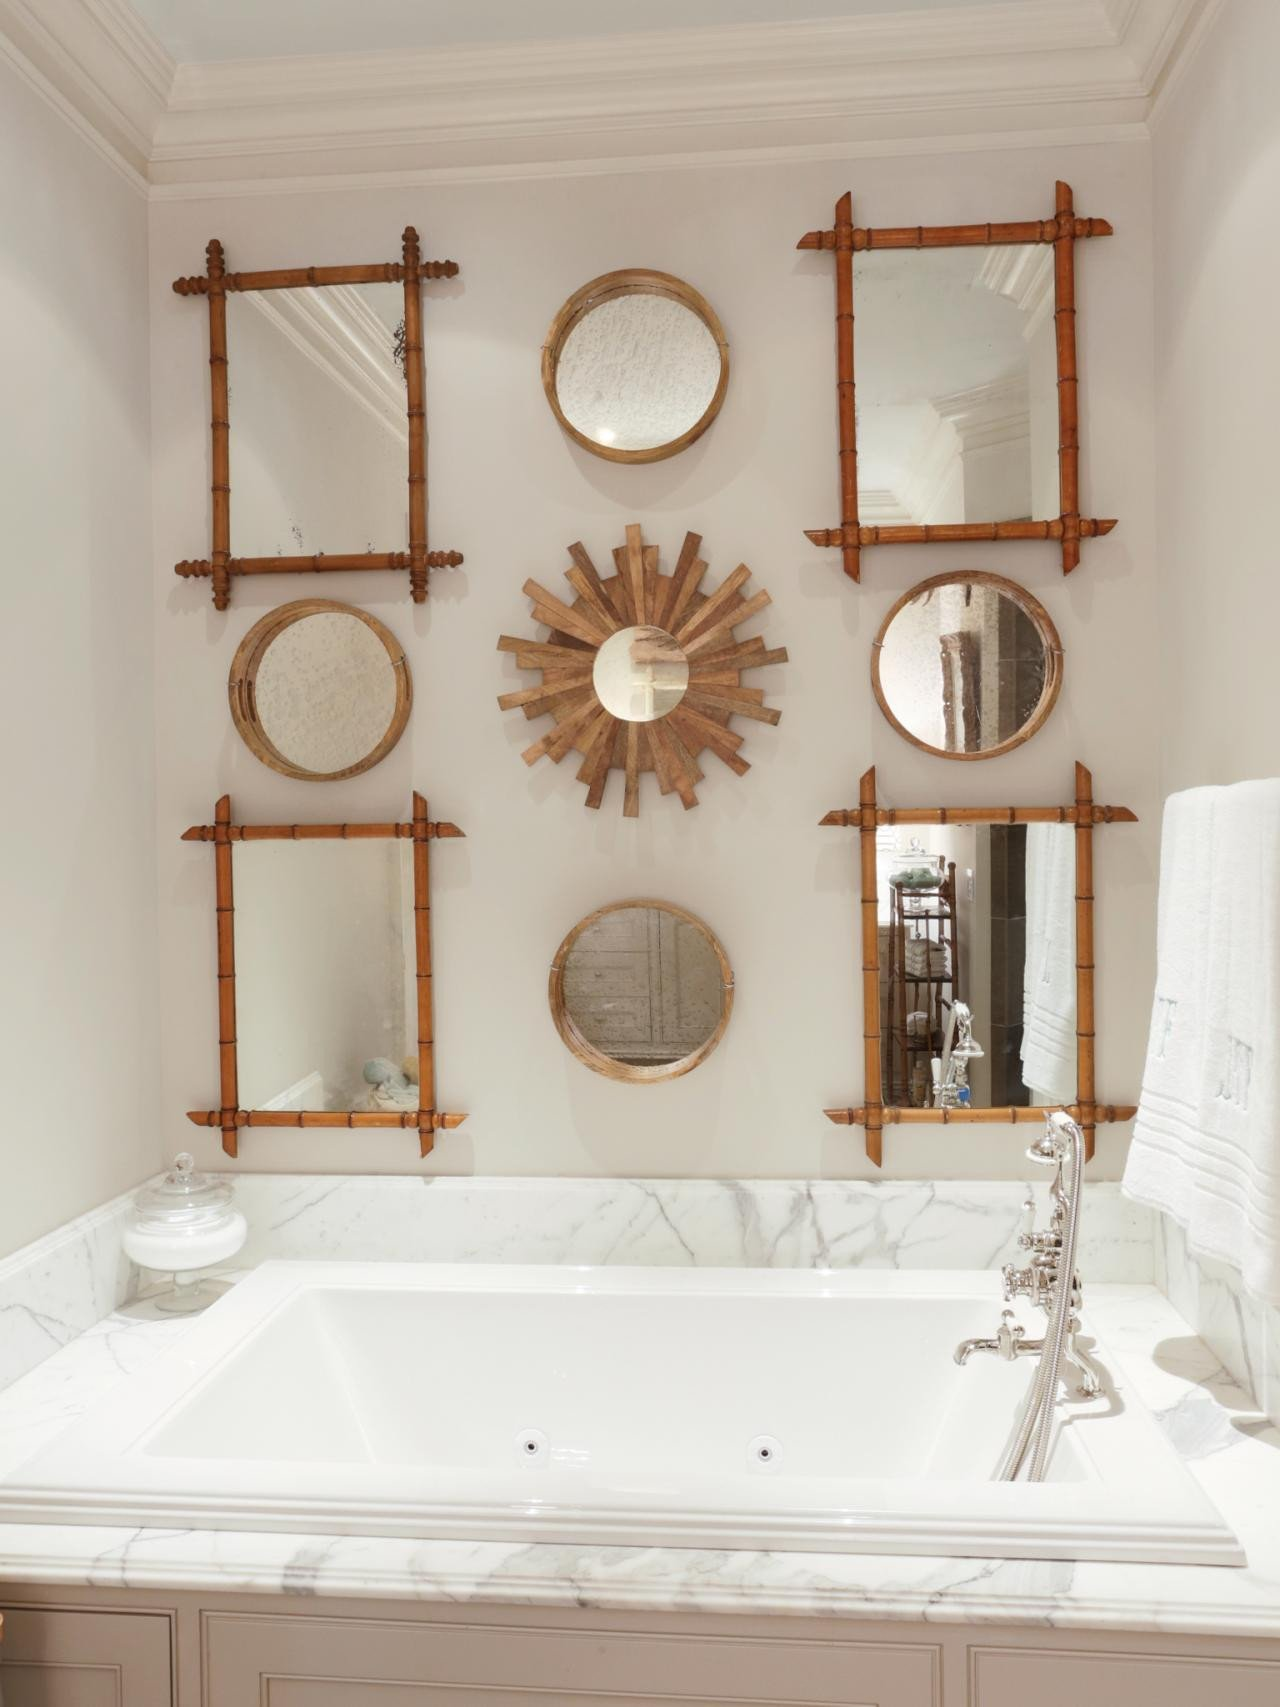 Pictures for Bathroom Wall Decor Luxury the Bathroom Wall Ideas for Beautifying Your Bathroom Midcityeast